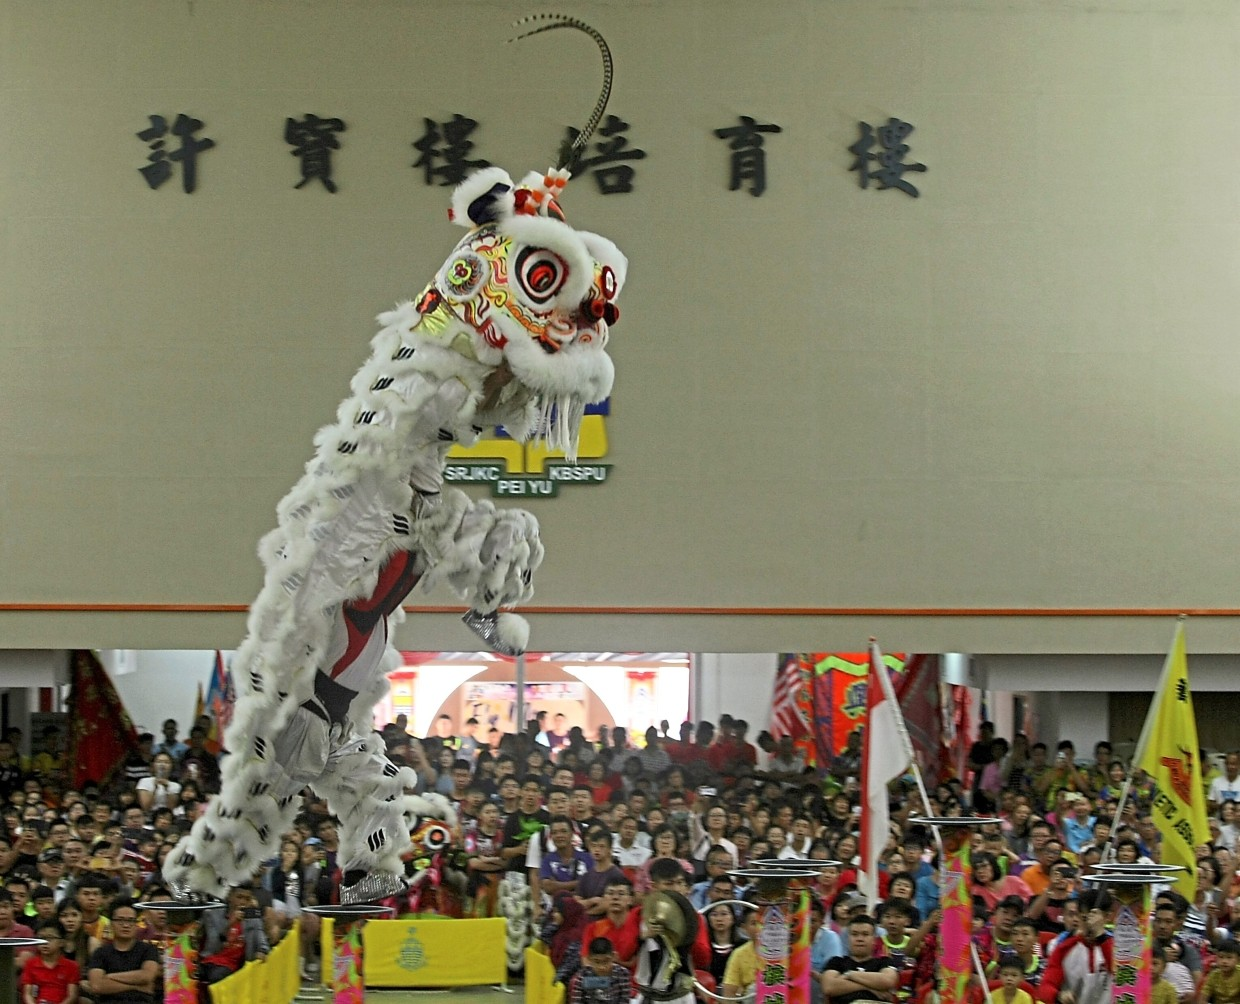 The lion dance troupe from Singapore Yi Wei Athletic Association mesmerising the crowd with a stunning performance.